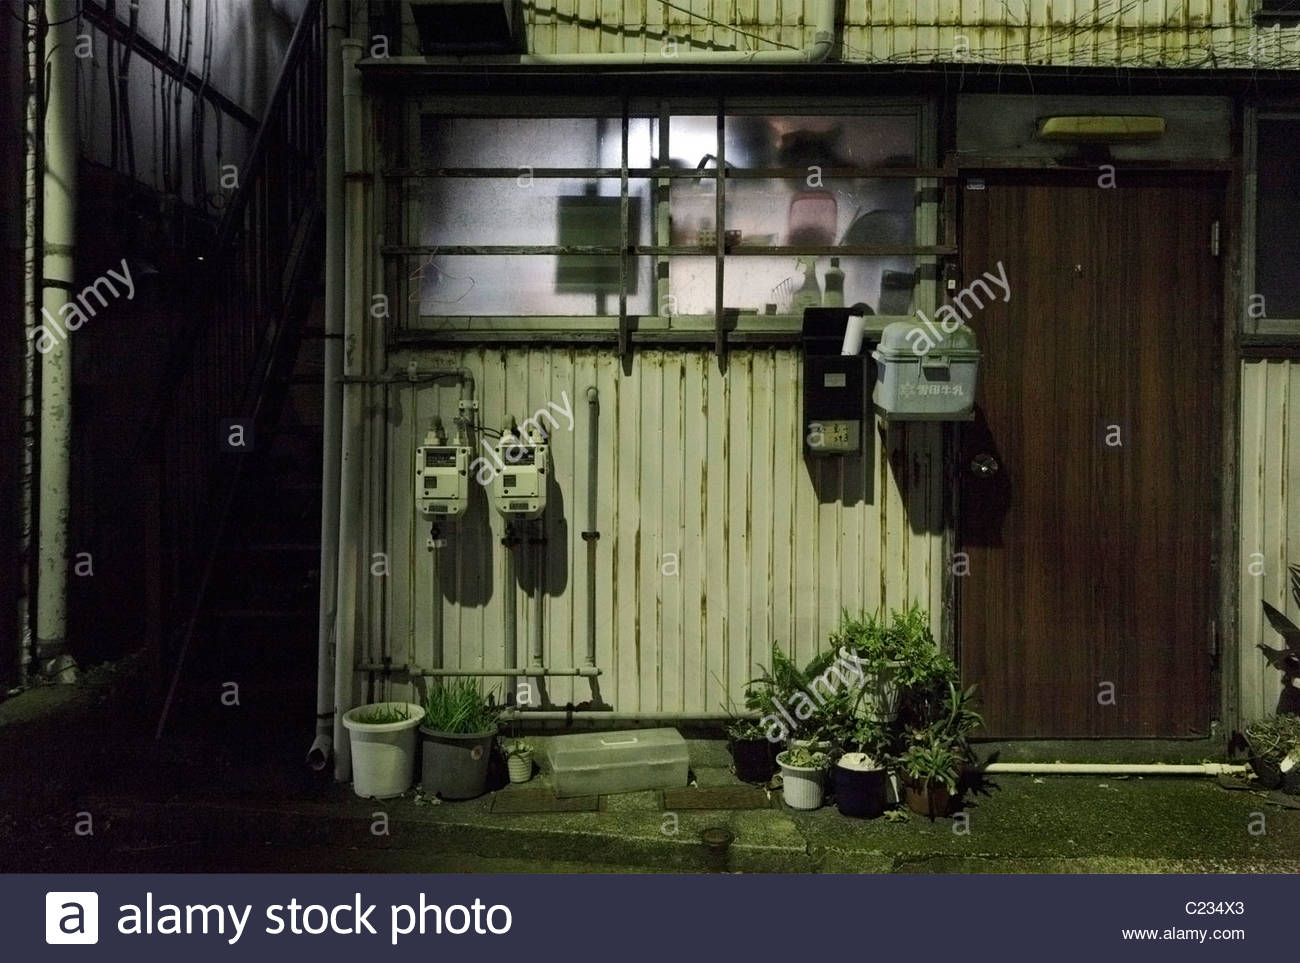 from inside lighted up kitchen window of a residential house Japan - Stock Image